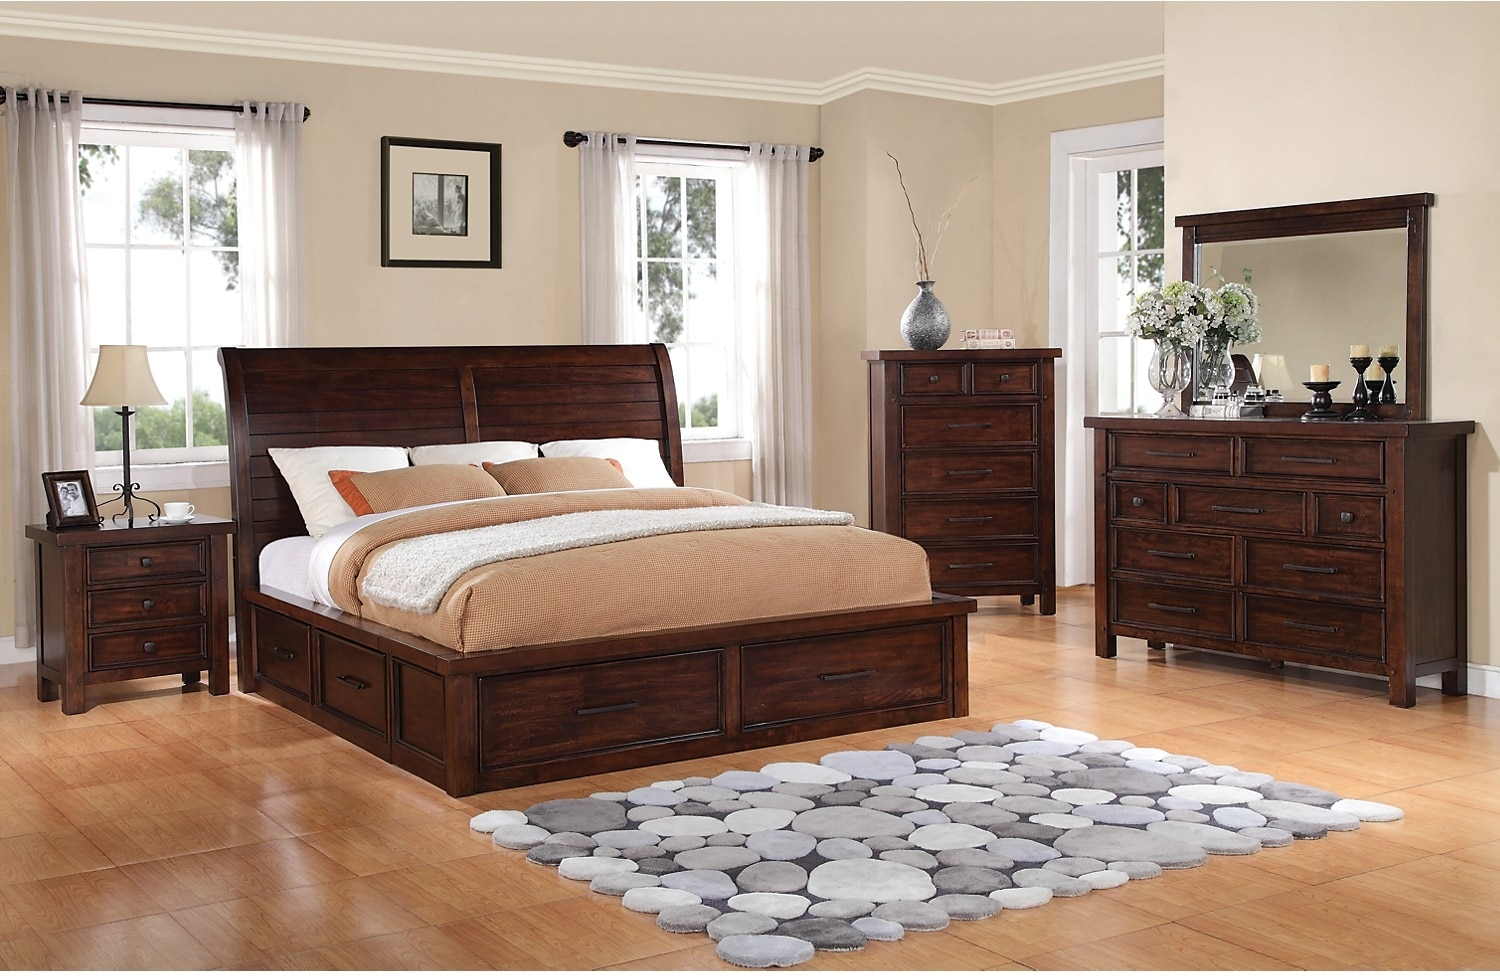 Bedroom Furniture - Sonoma 8-Piece Queen Storage Bedroom Set - Dark Brown